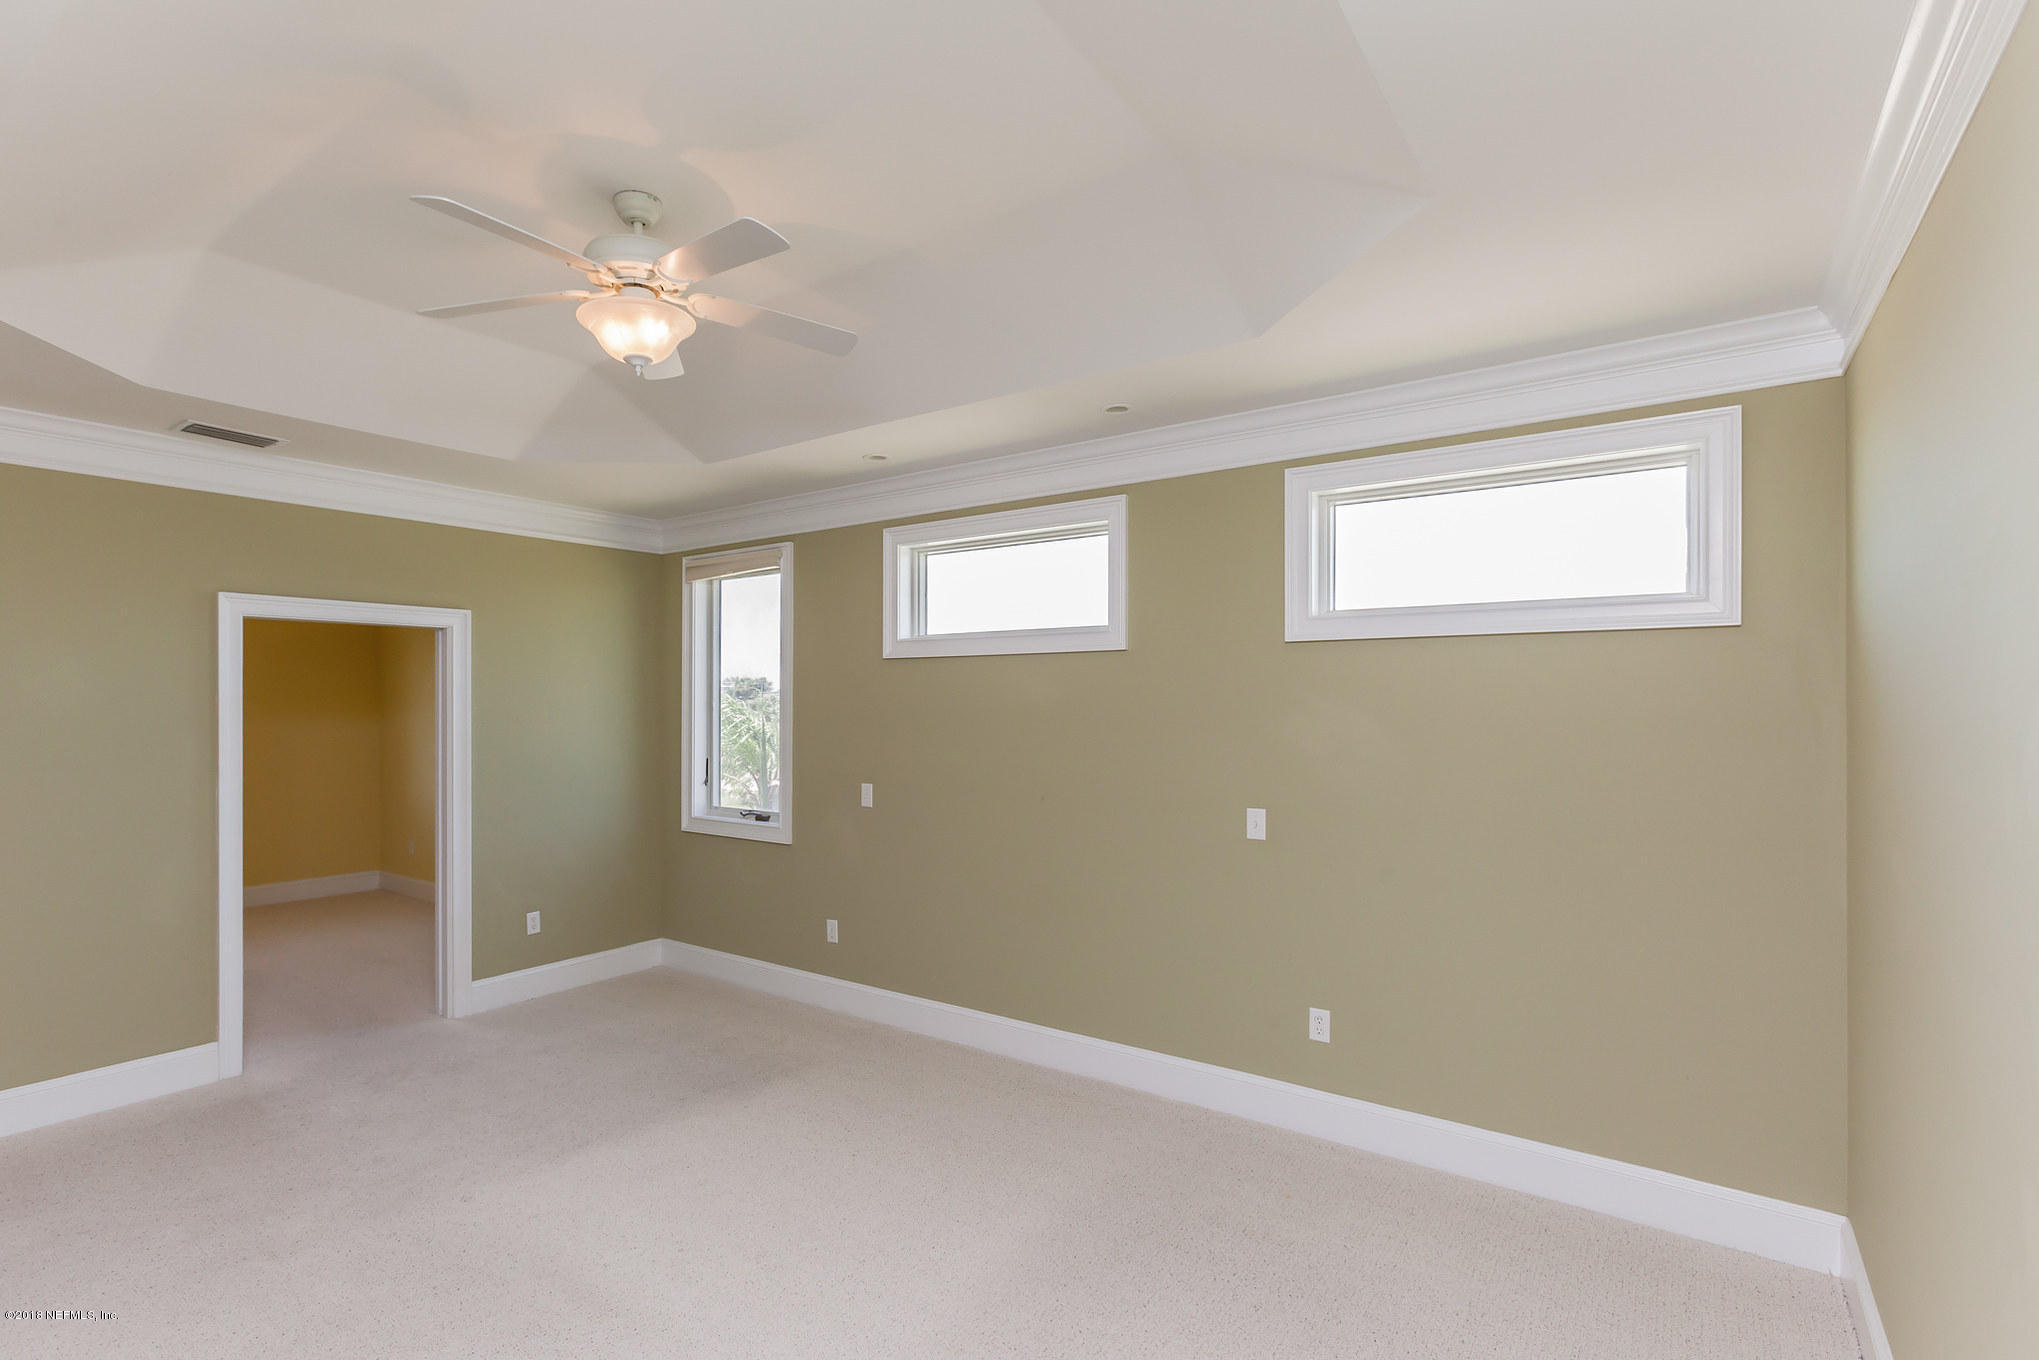 211 OUTRIGGER, ST AUGUSTINE, FLORIDA 32084, 3 Bedrooms Bedrooms, ,3 BathroomsBathrooms,Residential - single family,For sale,OUTRIGGER,943495